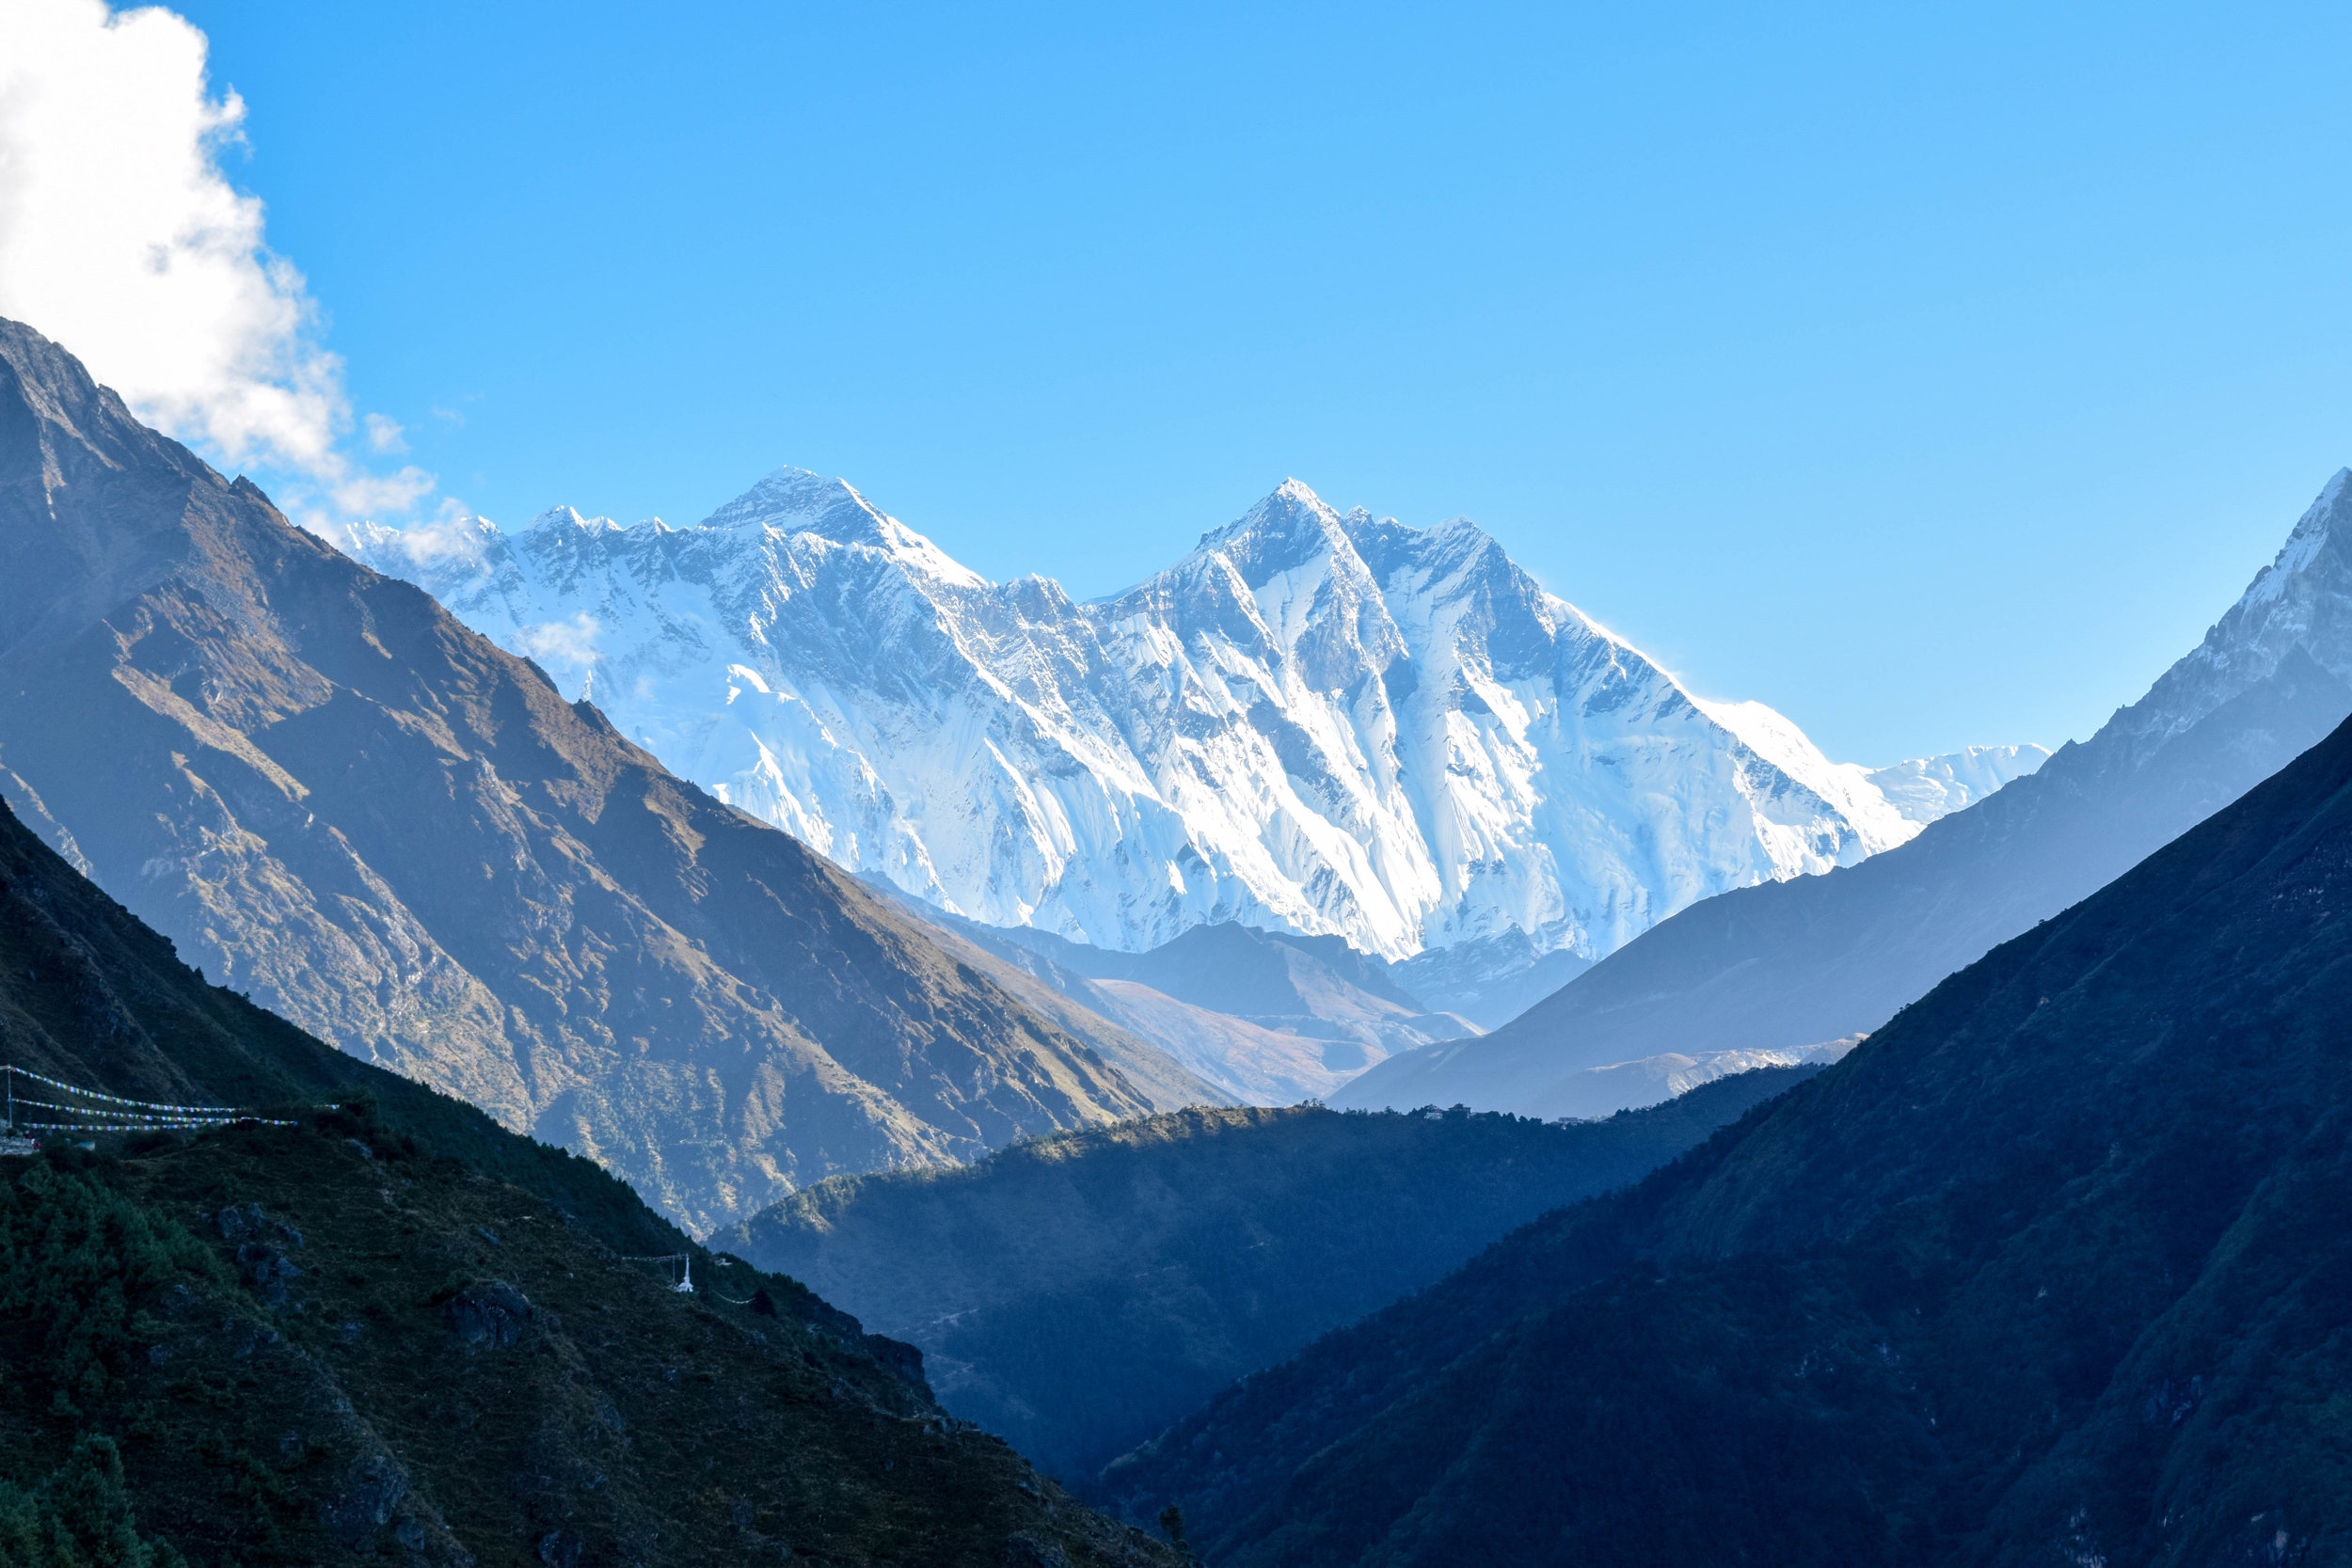 Thar she blows: Everest is the broad, flat peak in the center, with Lhotse on the right and Nuptse is the ridge on the left. Lhotse looks taller from here,but don't believe her lies.